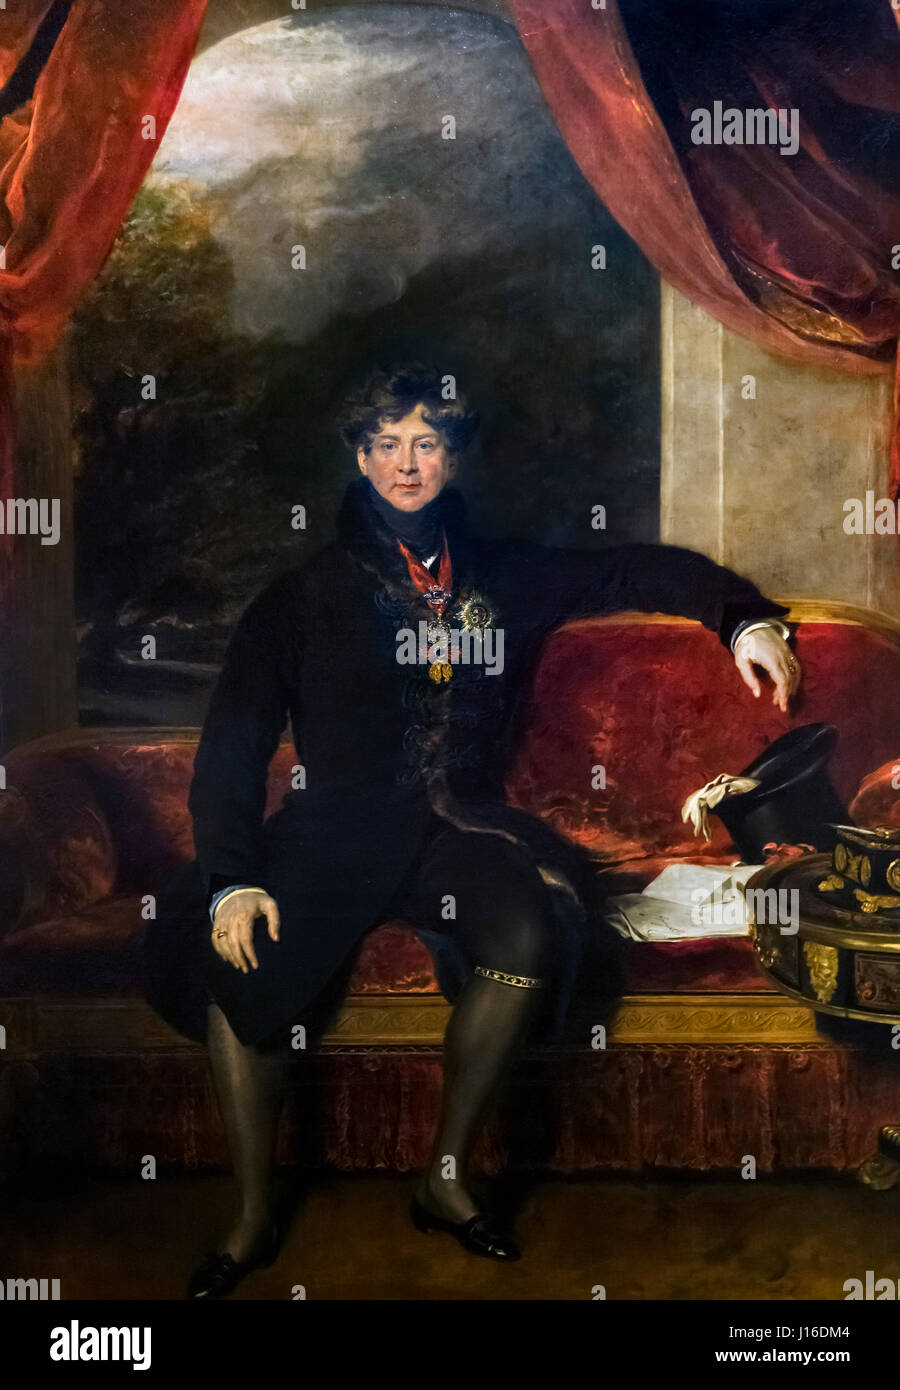 George IV. Portrait of King George IV by Sir Thomas Lawrence, oil on canvas, 1822 - Stock Image